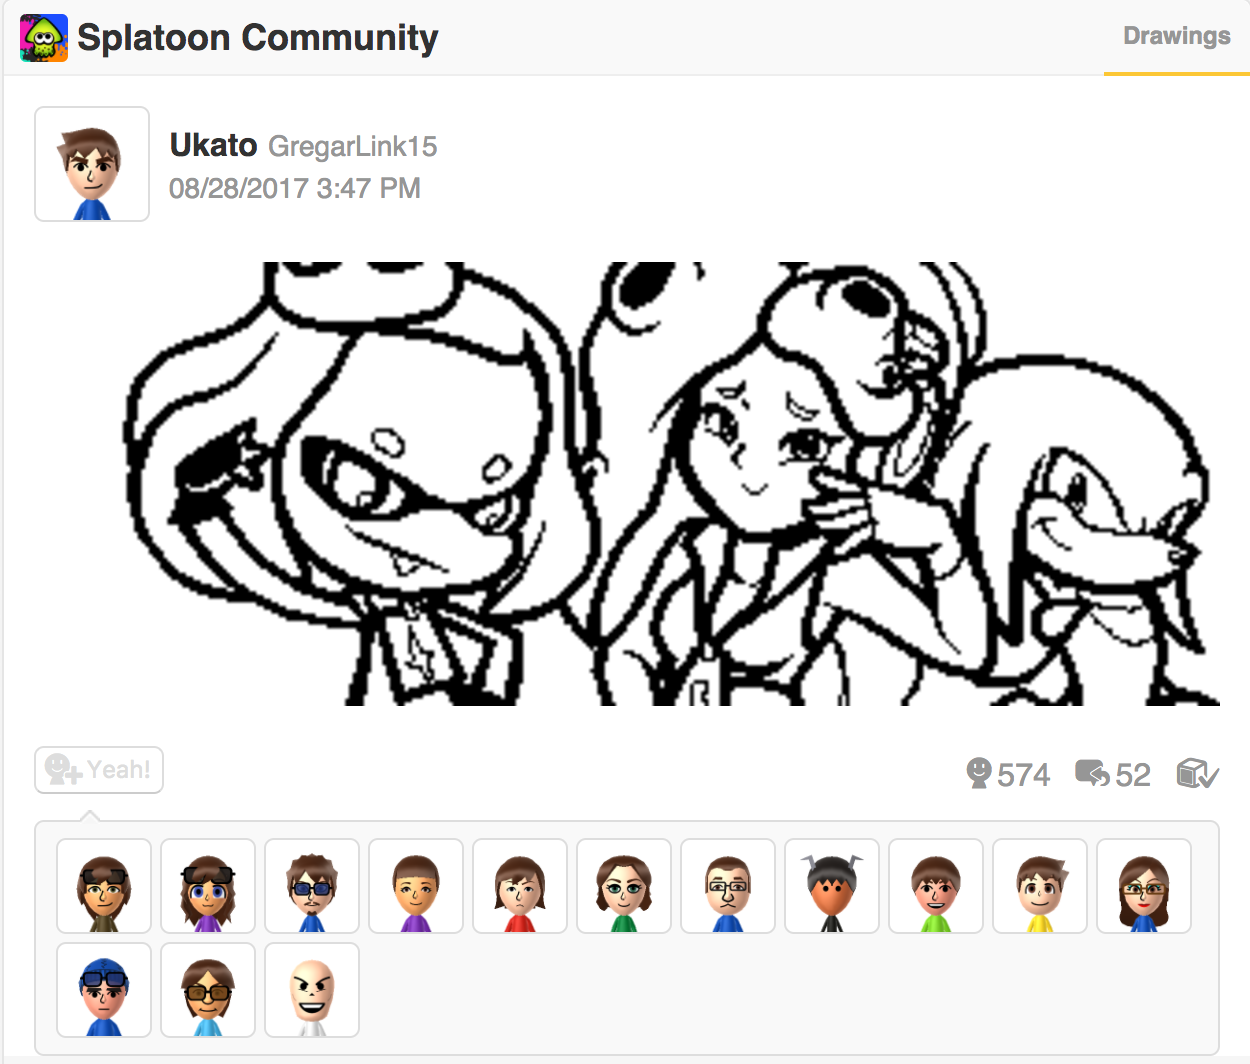 Nintendo's Miiverse May Be Dying, but an Archiver Is Working